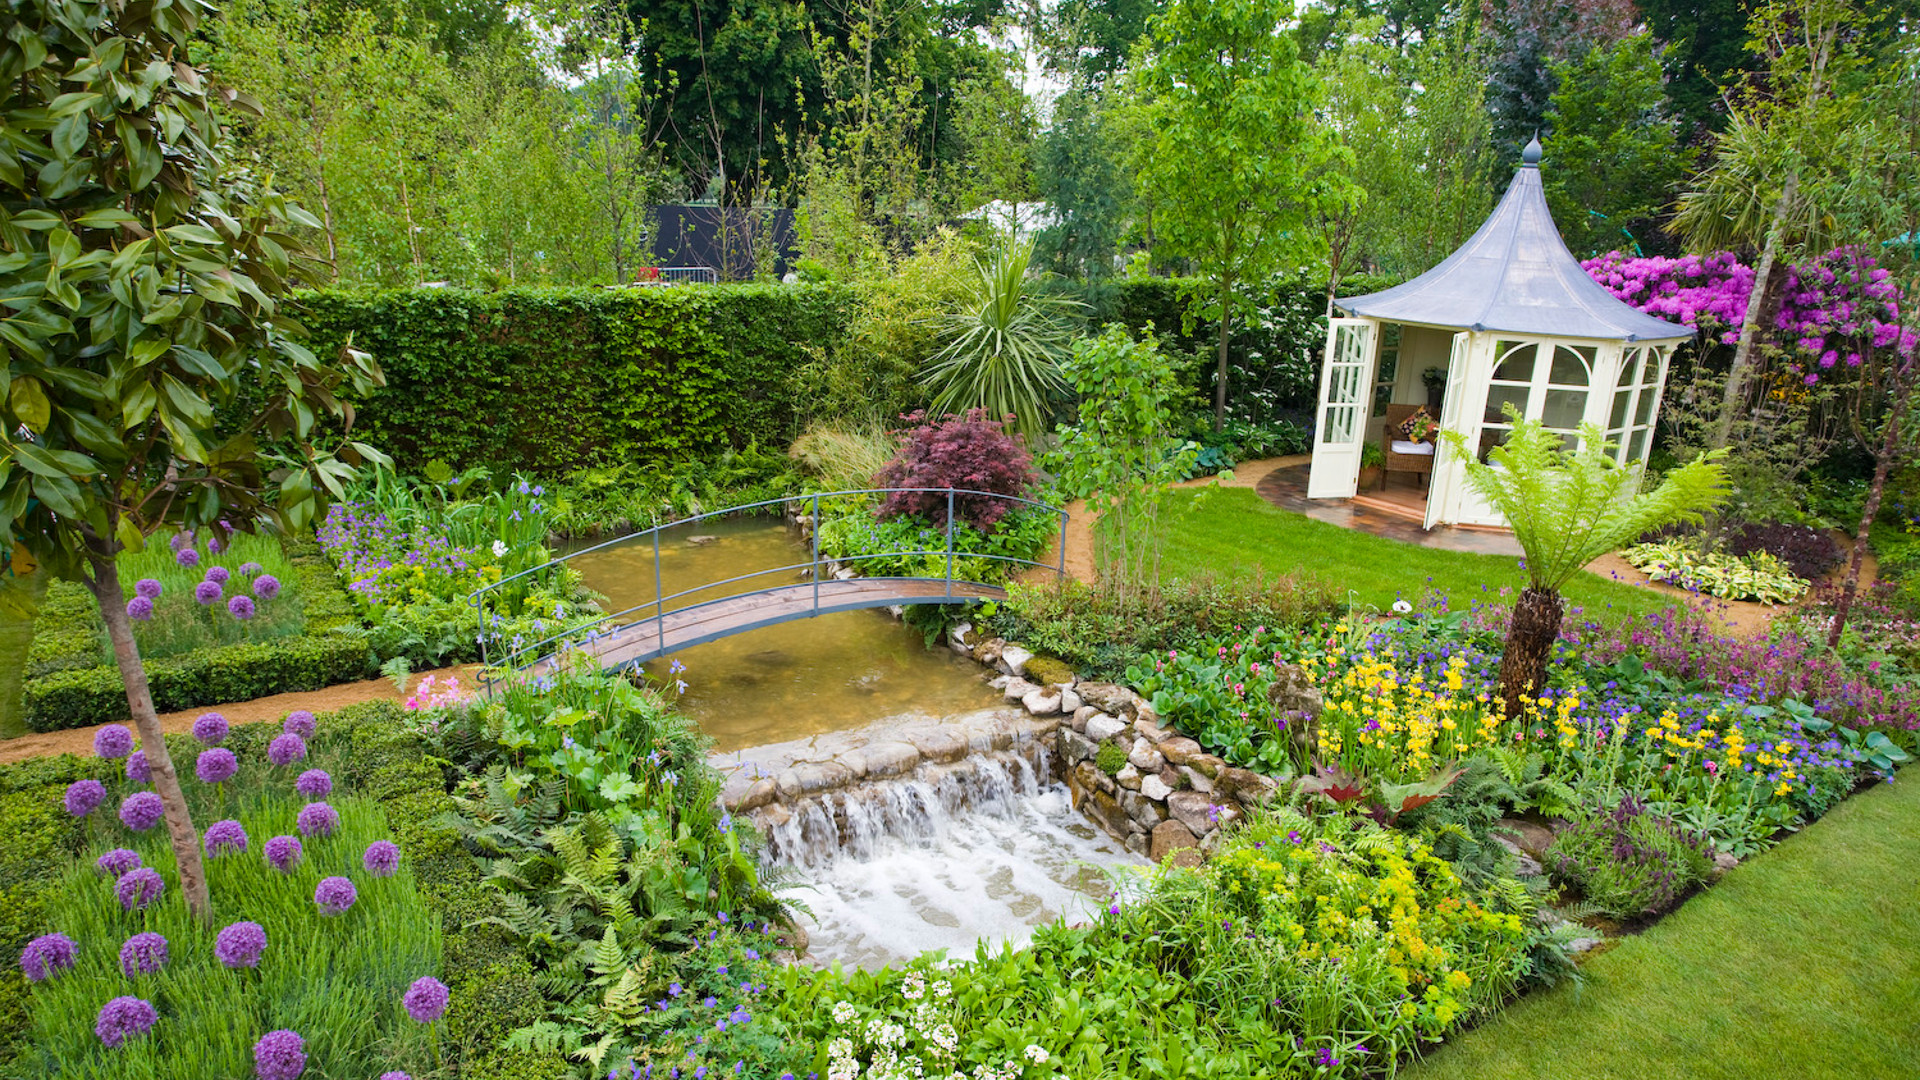 Tim austen garden designs designer gardens for Garden design pictures